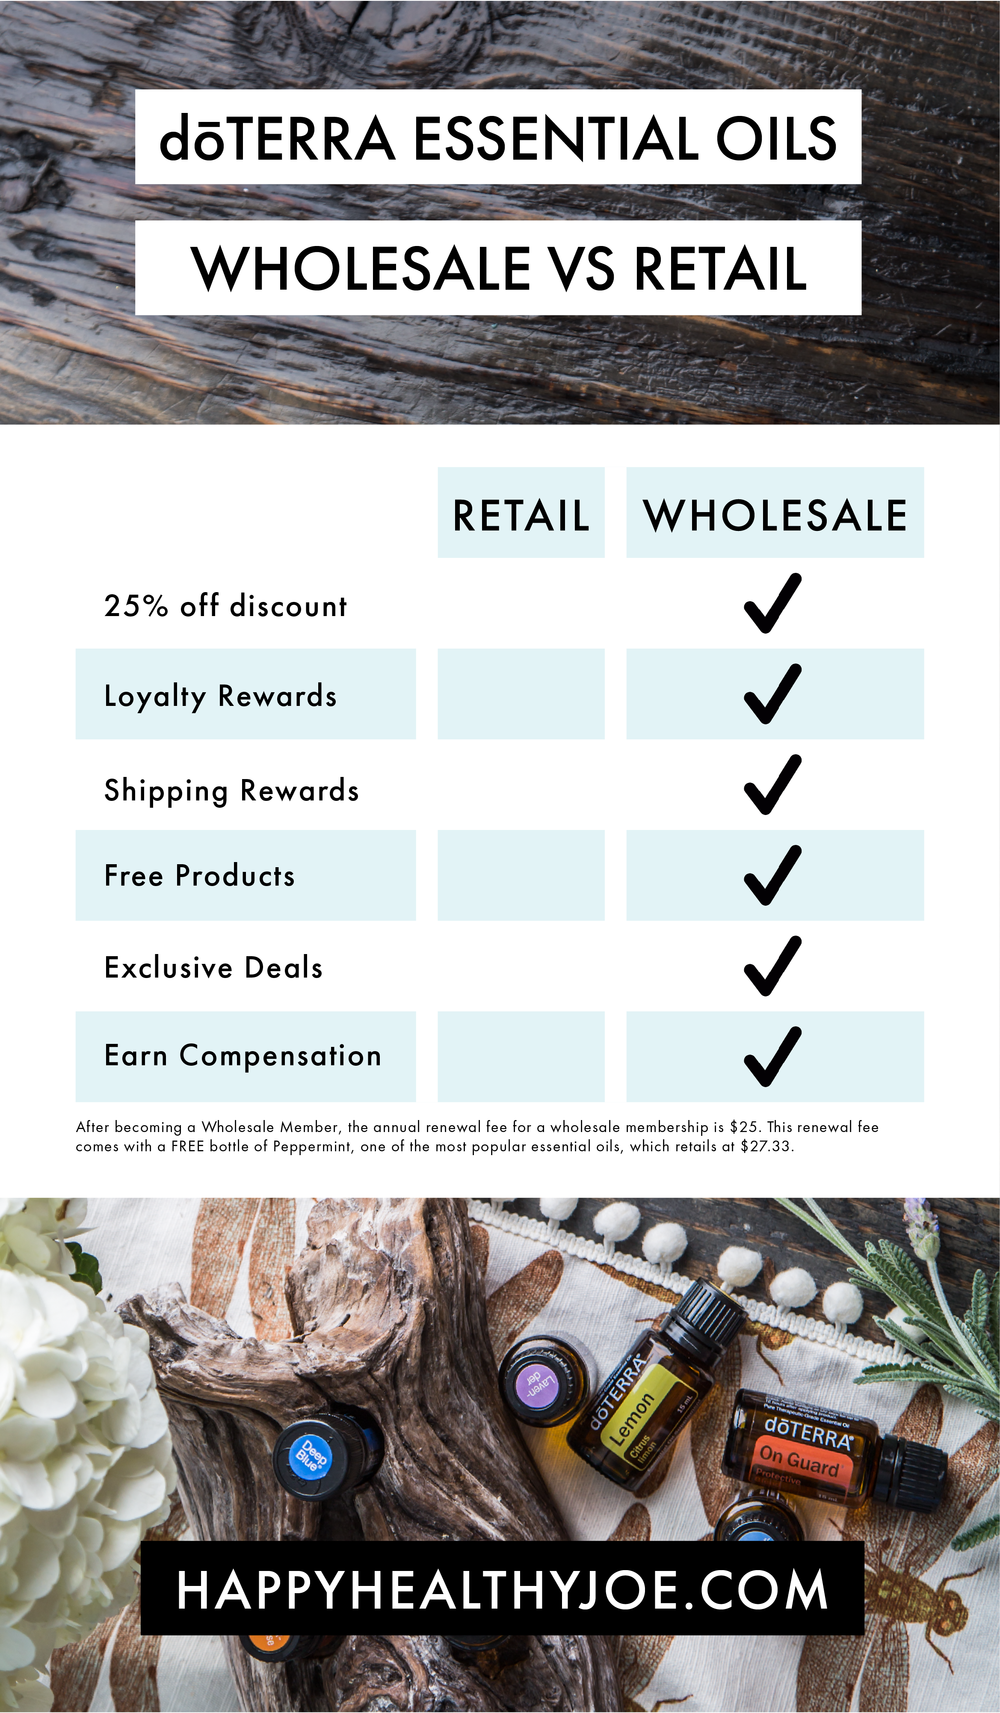 Here's a nifty infographic showing the perks that come with a dōTERRA Wholesale Membership! Basically, when it comes to benefits, Wholesale beats Retail 5-0!